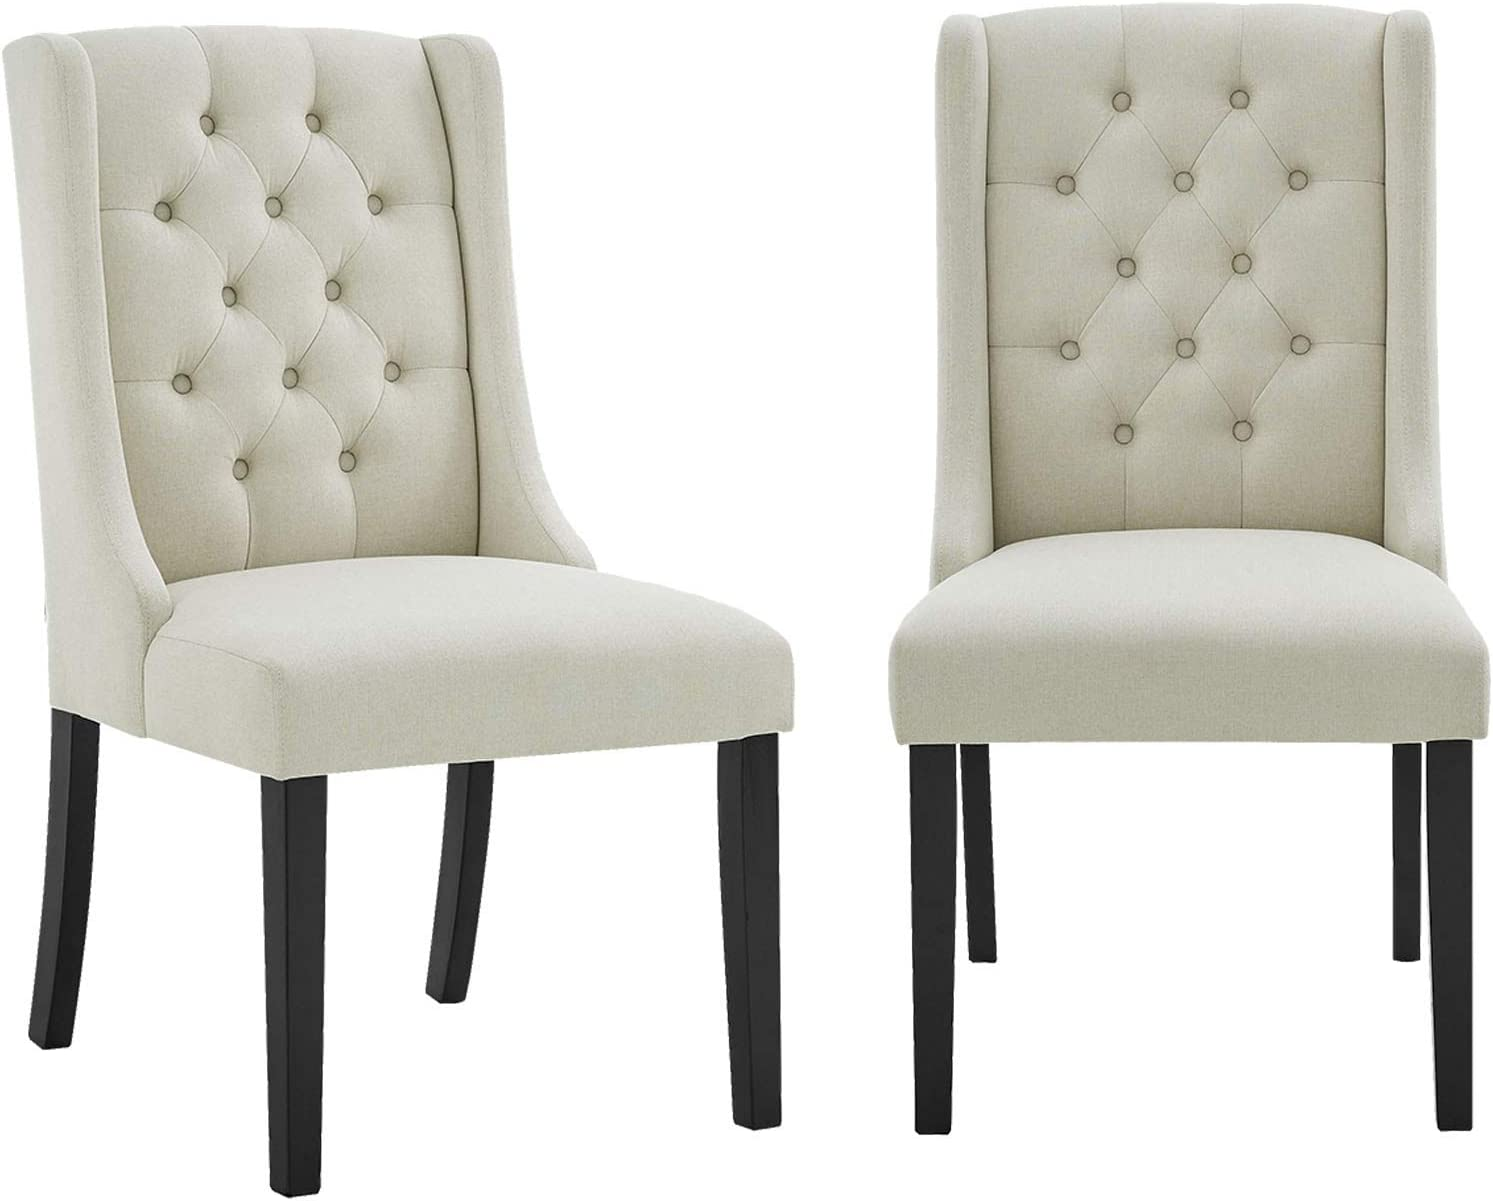 Accent Max 62% OFF Side Chairs Set OFFicial shop of 2 Tufted Button Fabric Ele Padded Seat